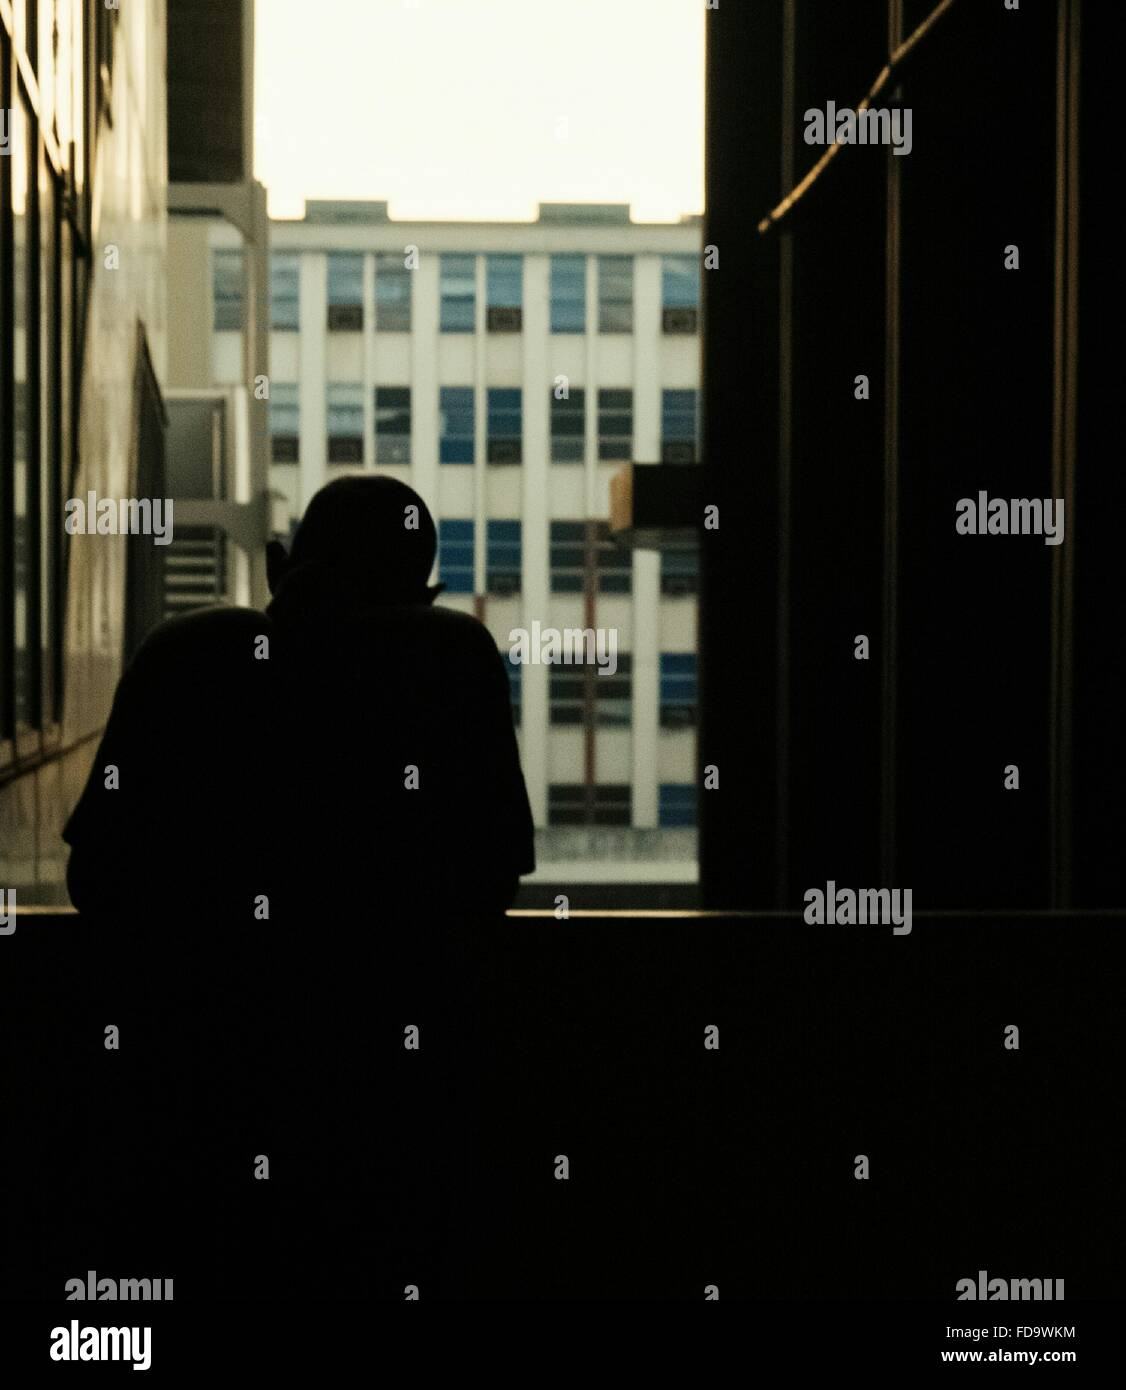 Silhouette Of Man Looking Through Window - Stock Image